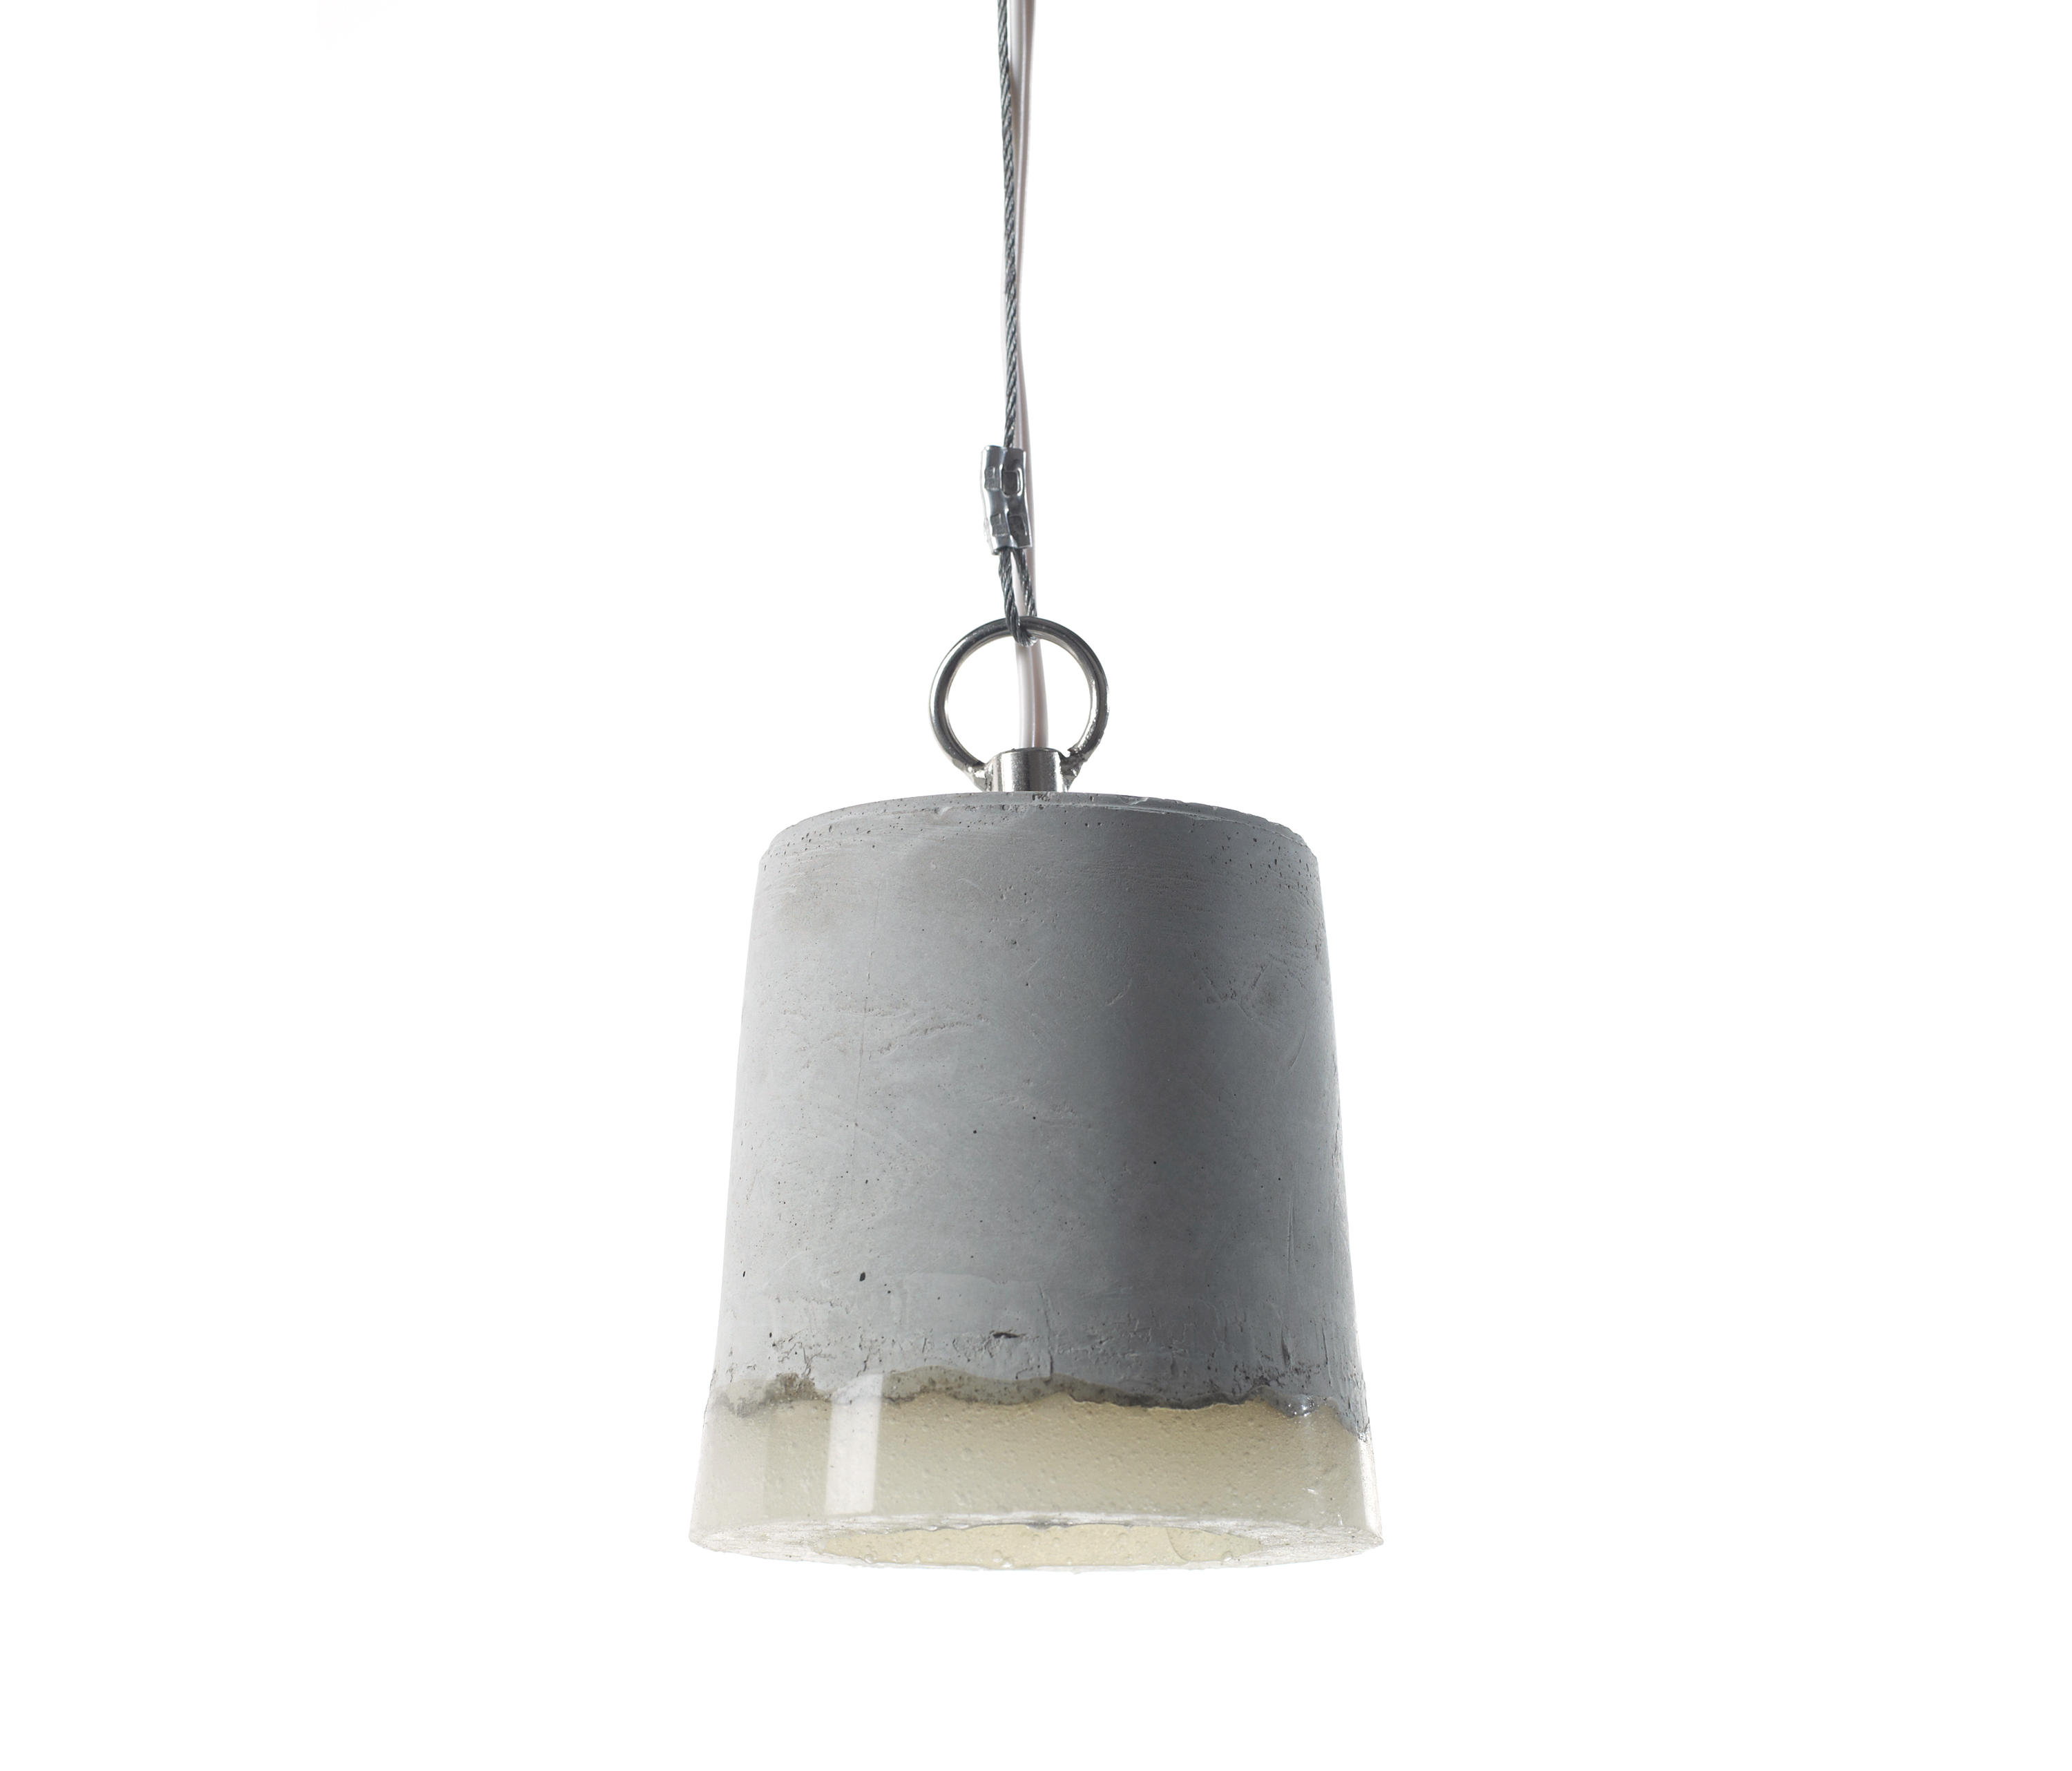 crowdyhouse concrete rota shop pendant grey lamp on